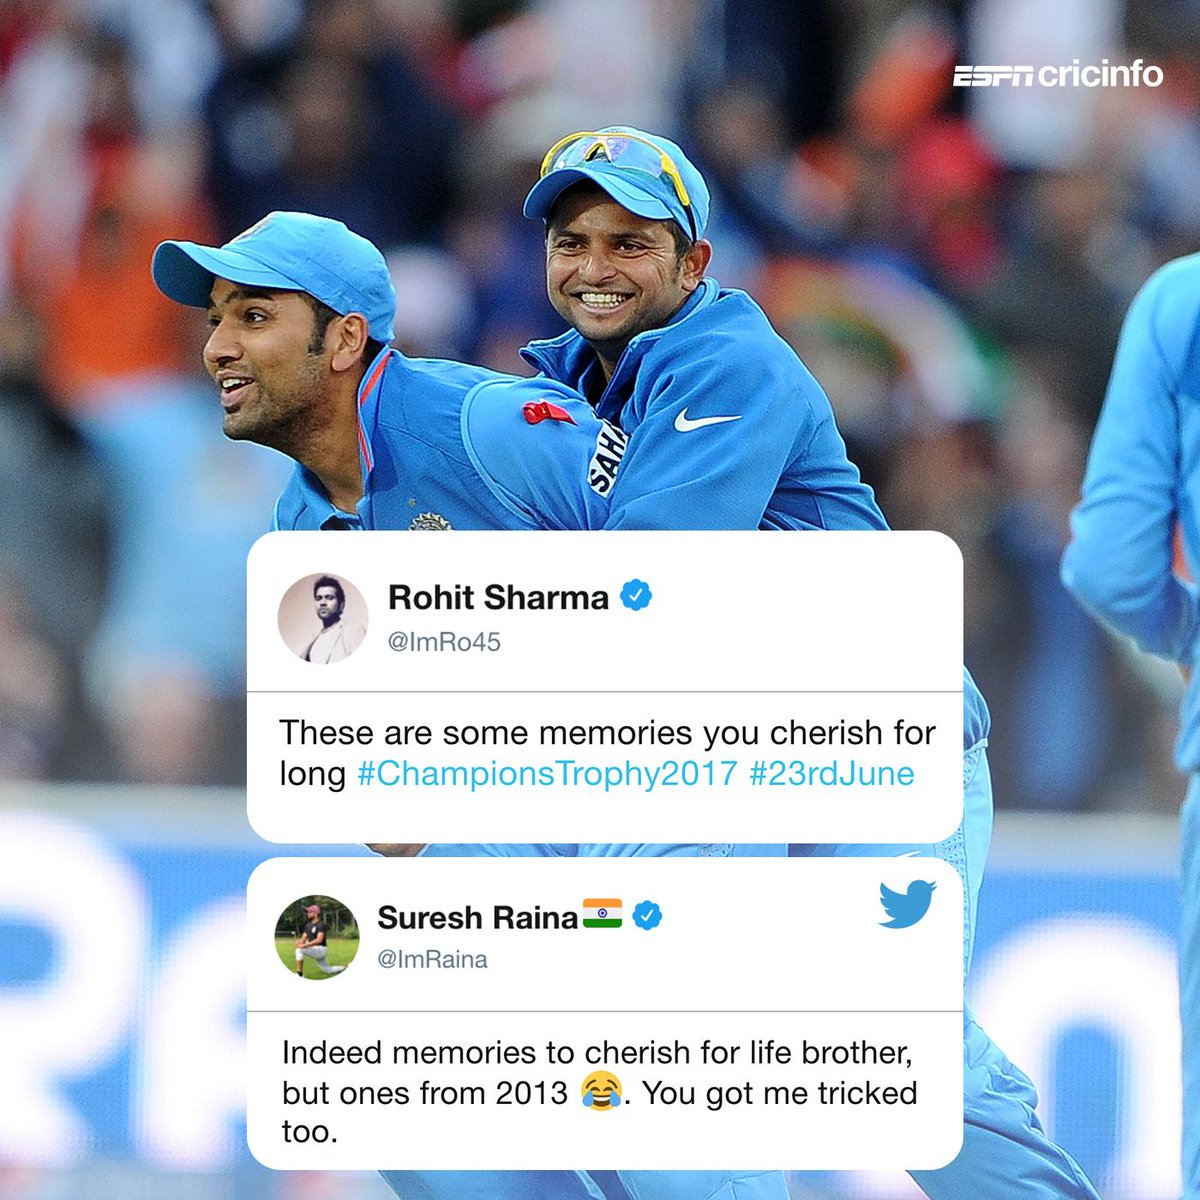 Oops! As quite a few of you have asked, has Rohit Sharma become 🇵🇰 batting coach already? 😂 https://t.co/7rVgomTntU